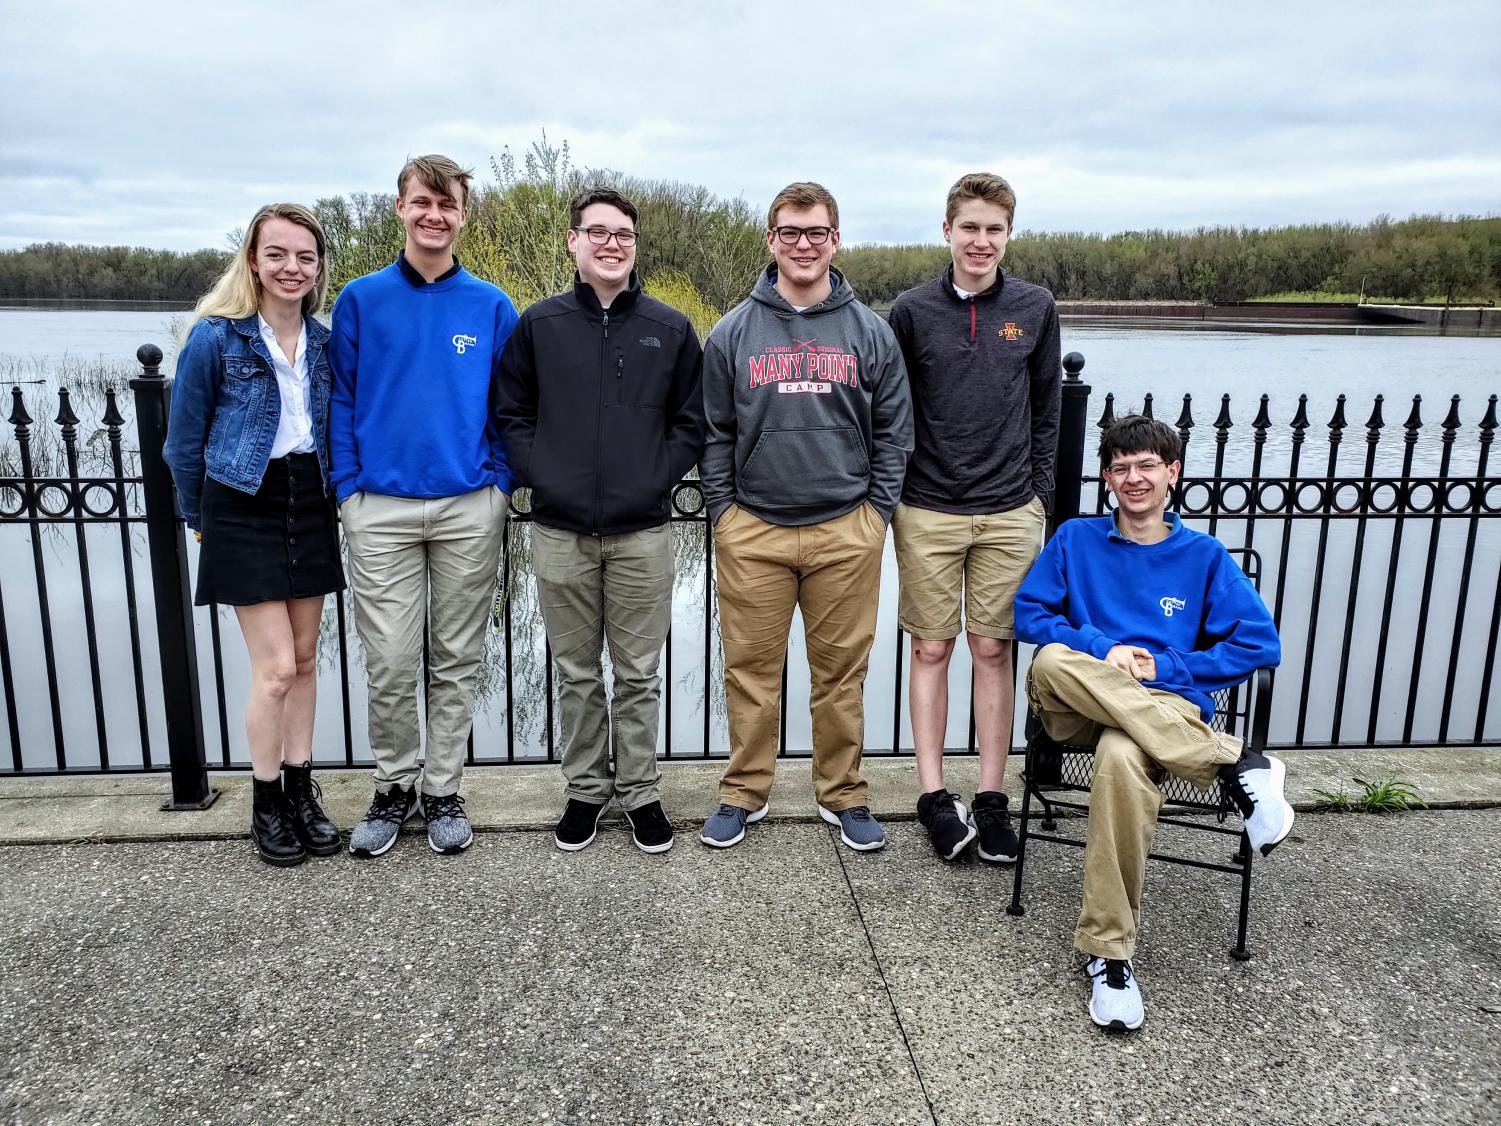 Maddie Mohan, Hunter Ramsden, Jack Walters, Tyler Nachtigal, Joey Renk, and Aidan Carlson on the deck of MMAM overlooking the Mississippi